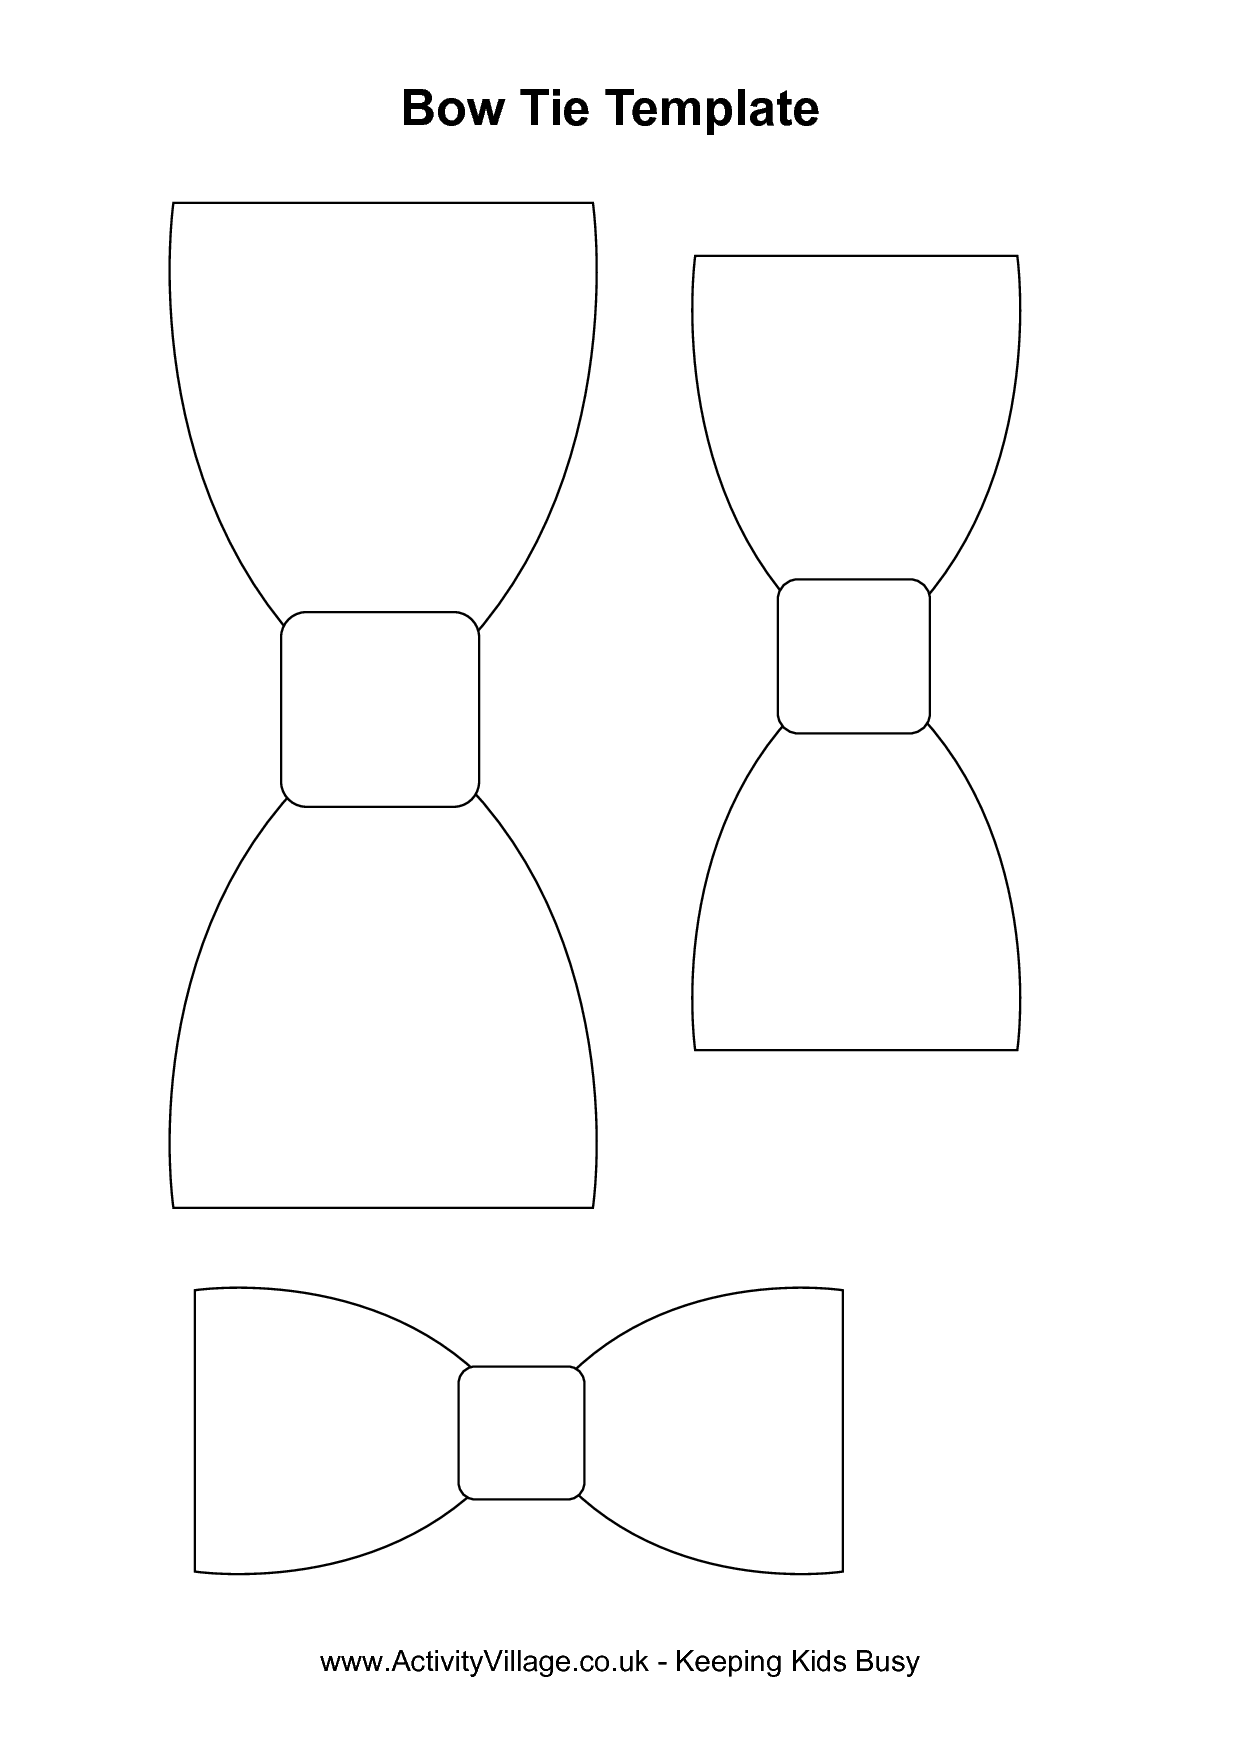 Tie clipart bow tie pattern Out of Cut Pattern Out